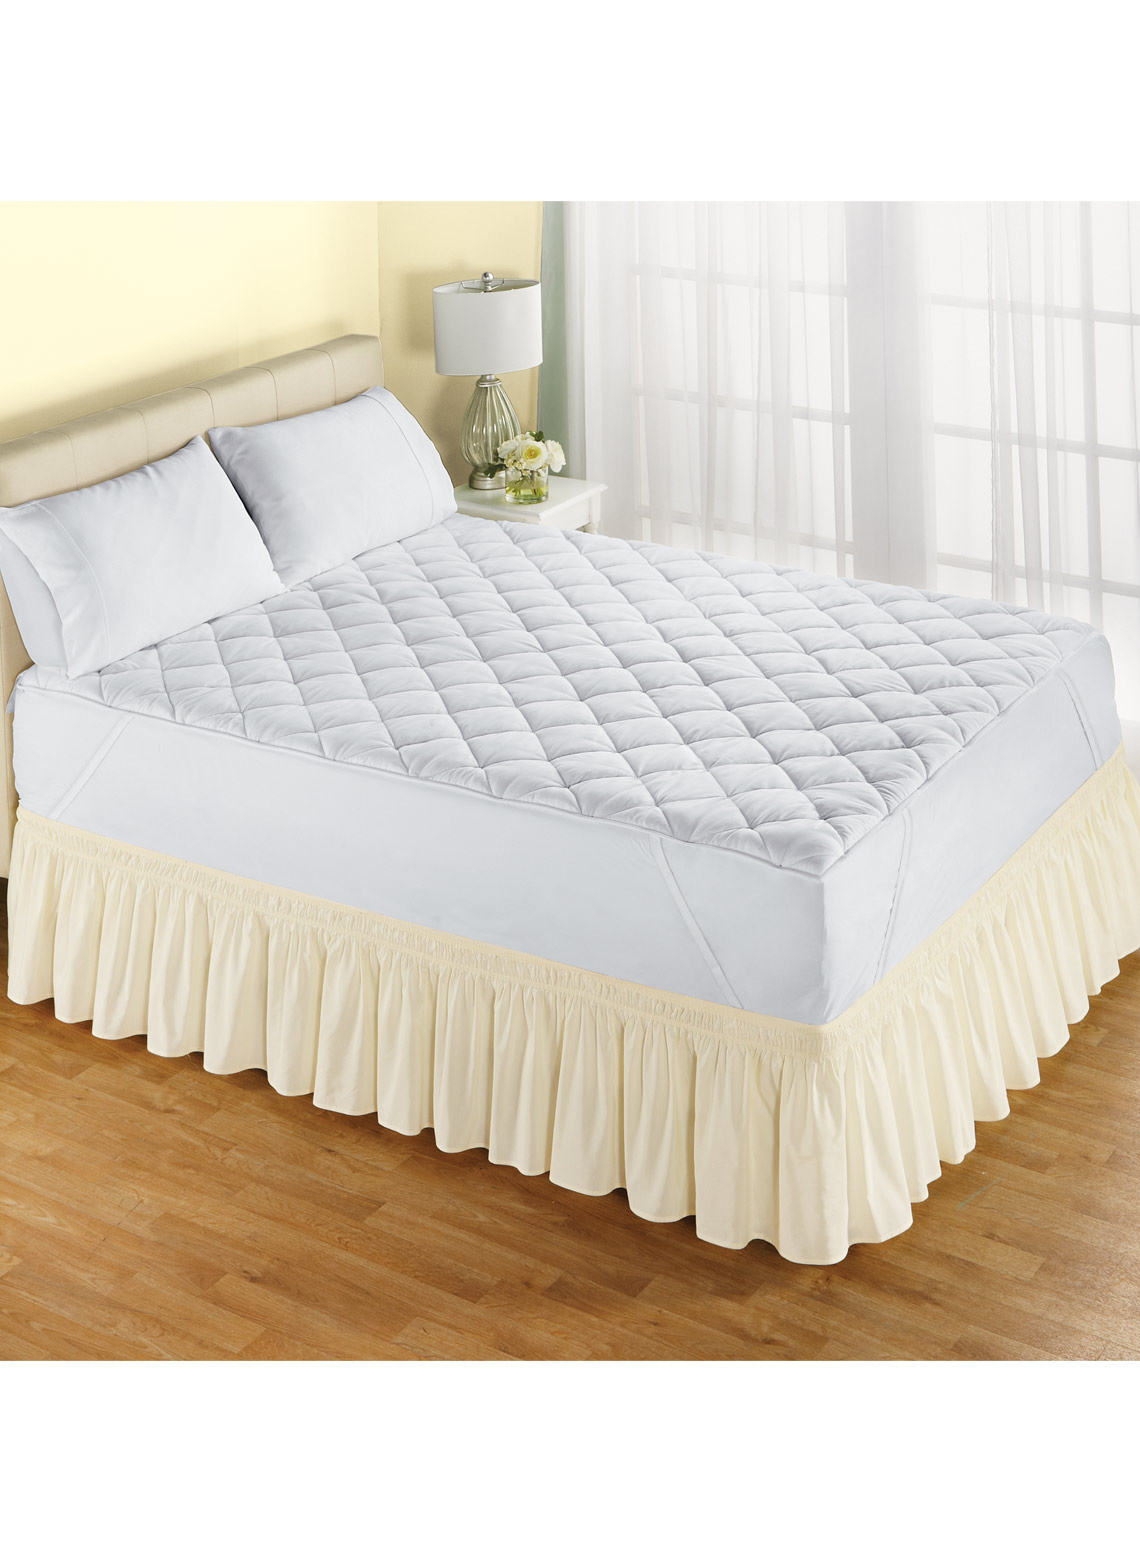 Full comfort mattress topper carolwrightgifts full comfort mattress topper loading zoom solutioingenieria Image collections